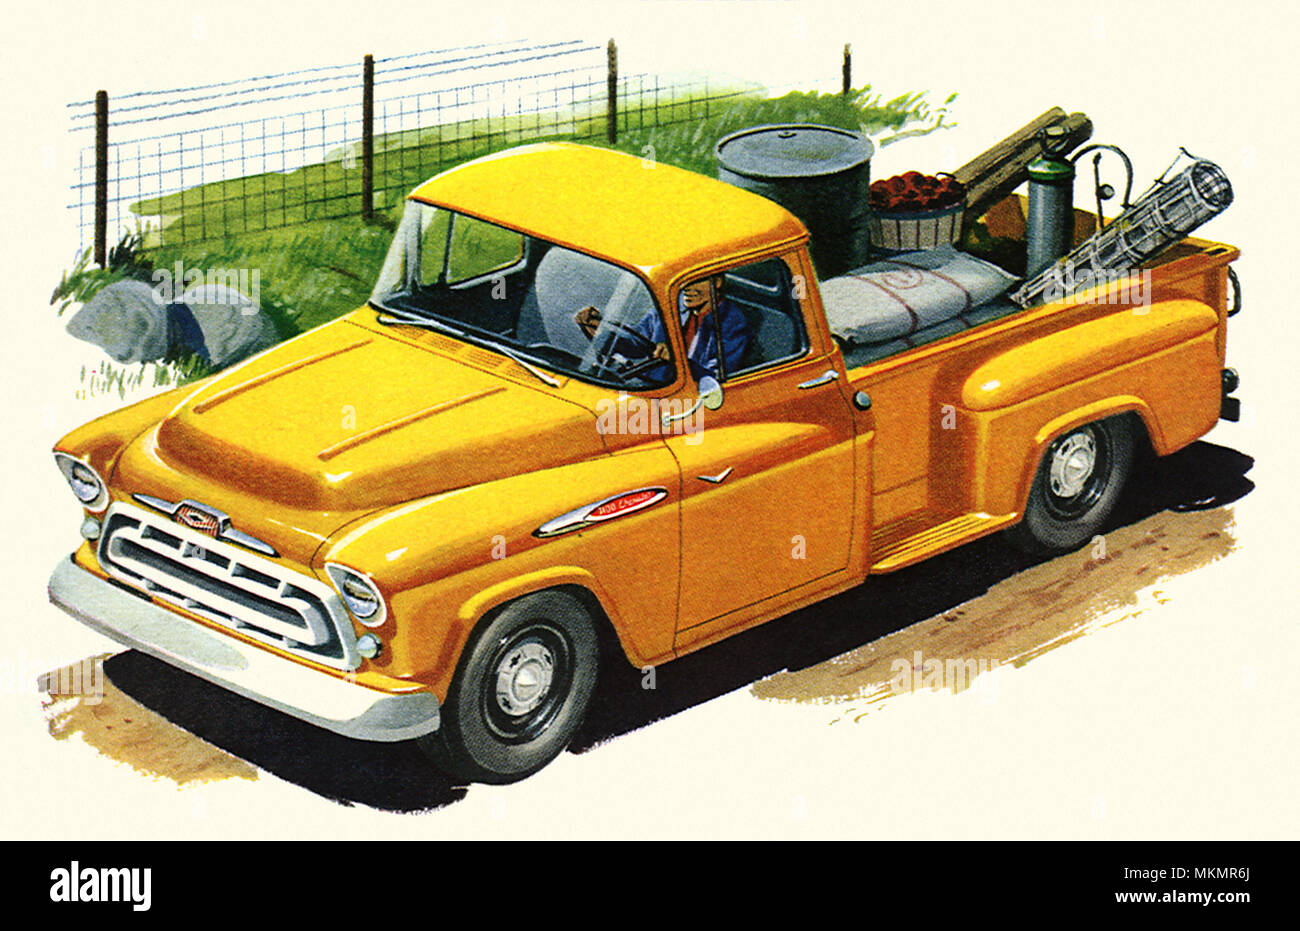 1957 Chevy Truck Stock Photos Images Alamy Pickup Sale Image